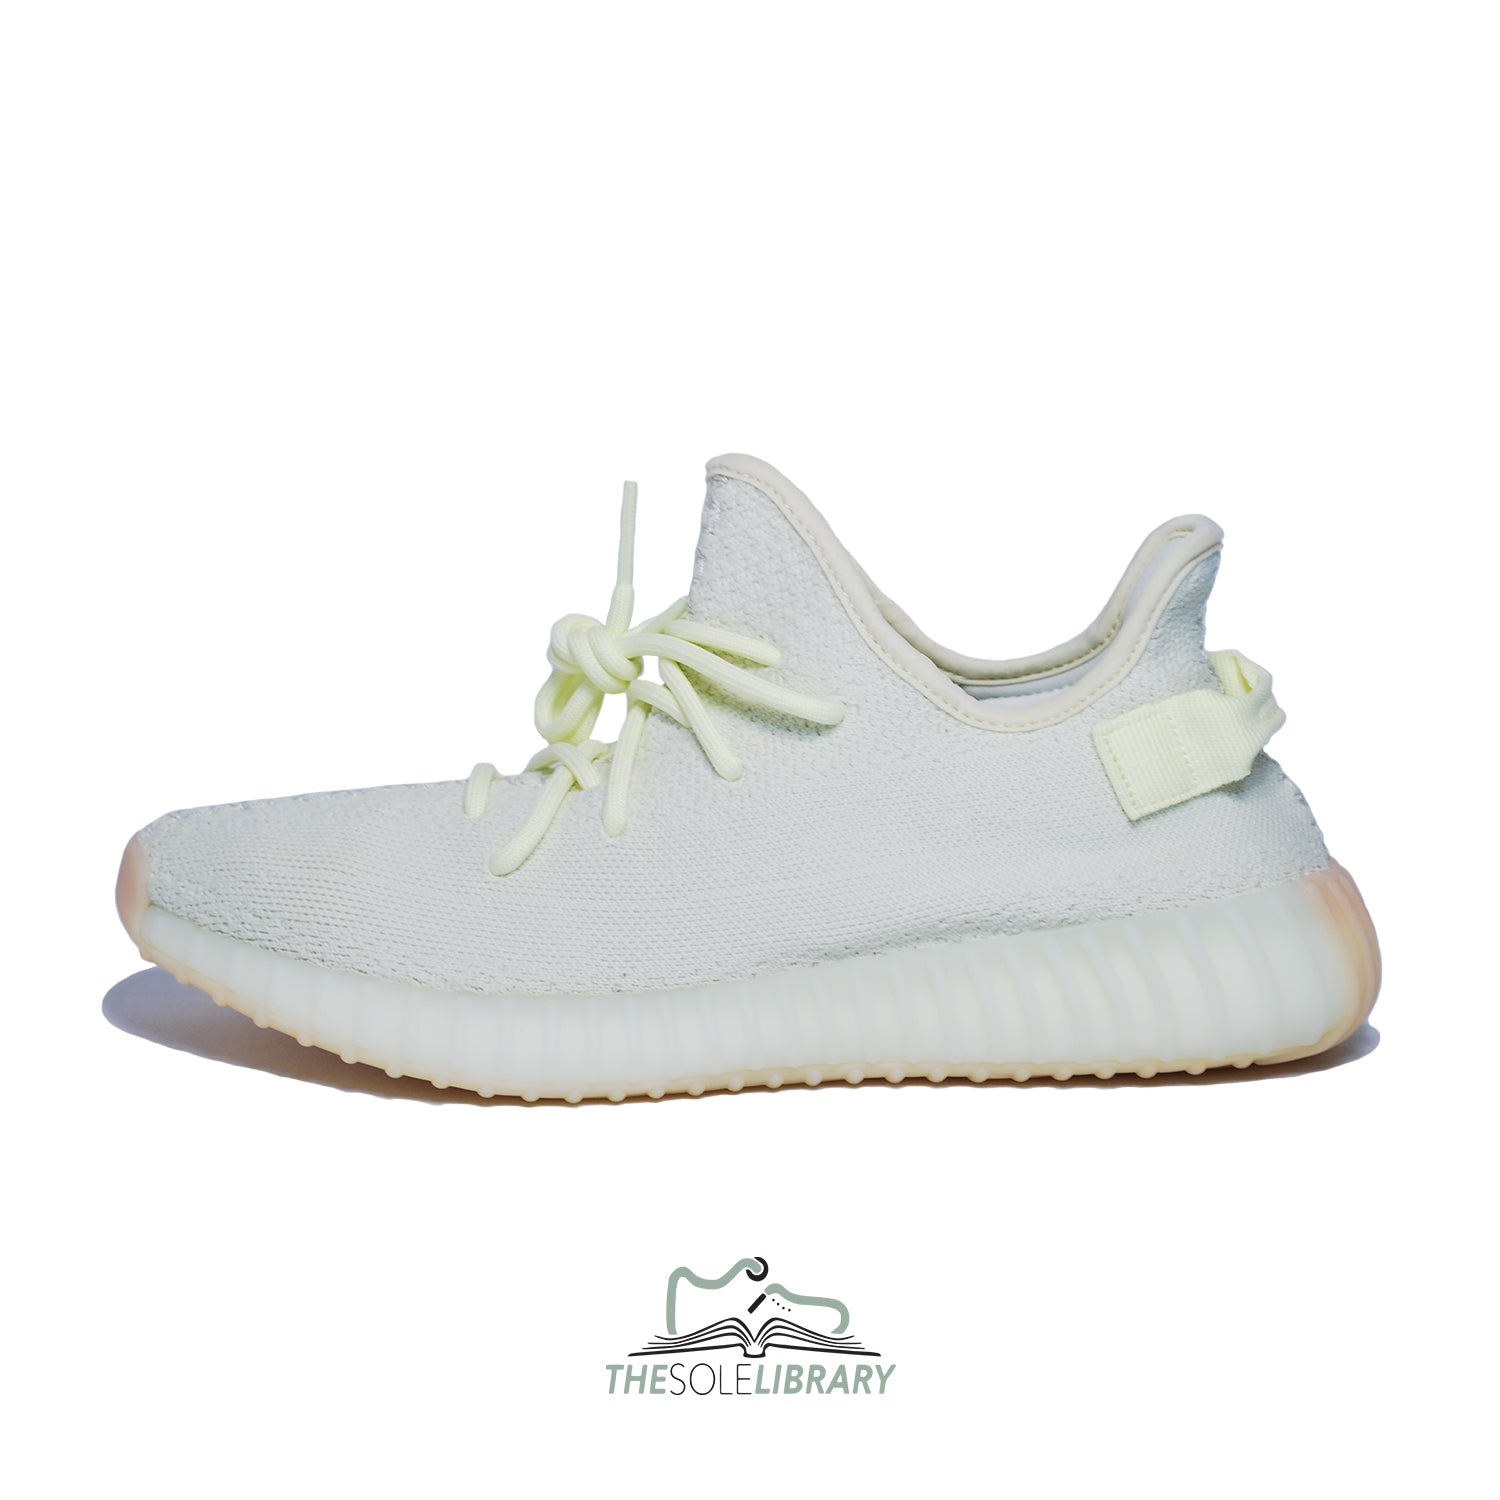 a49132c51 Adidas Yeezy Boost 350 V2  Butter  - The Sole Library